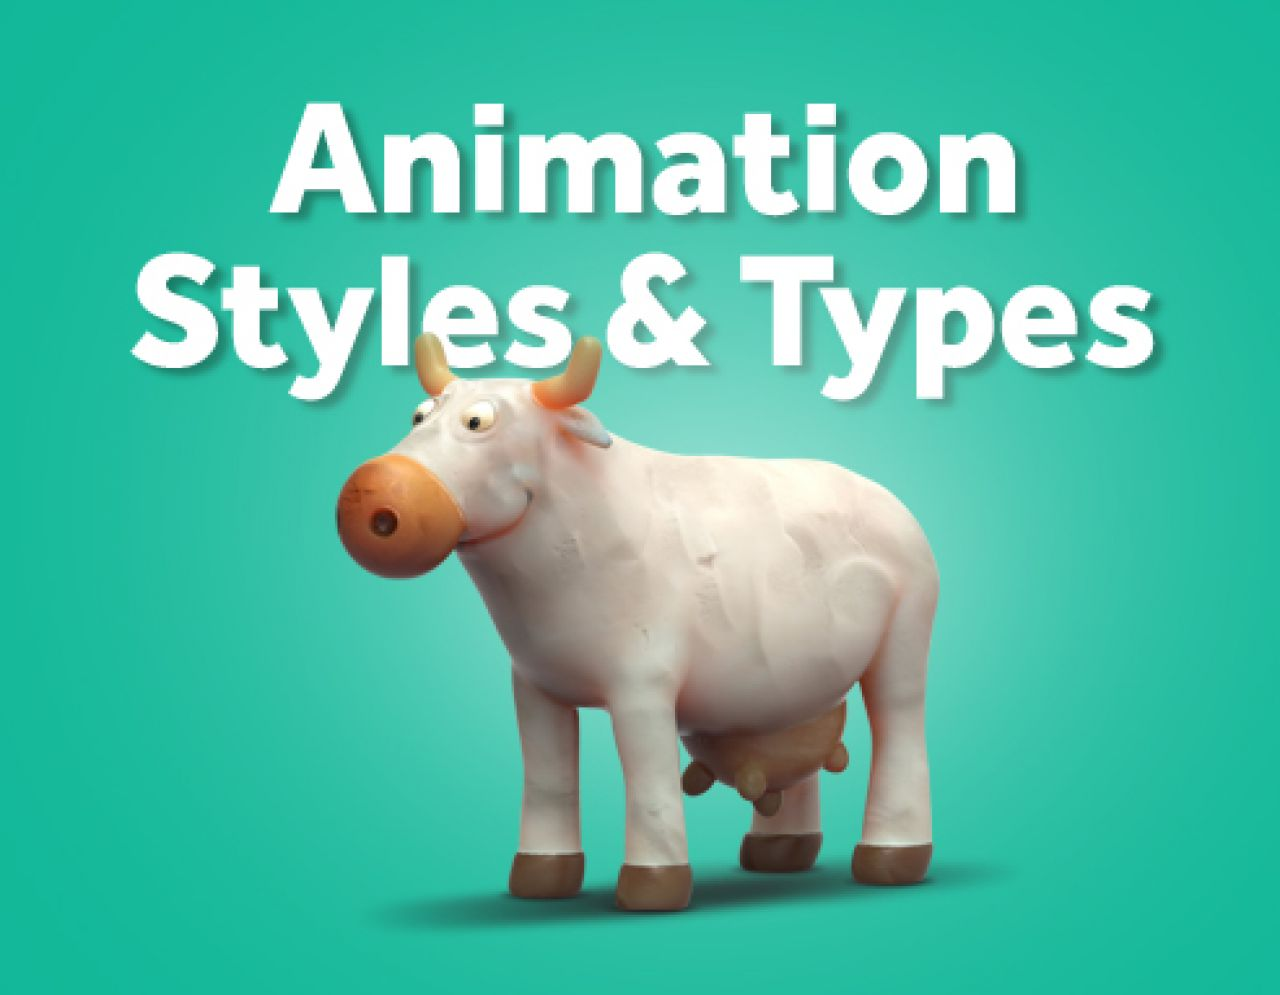 Animation Styles  Types  Biteable-5742